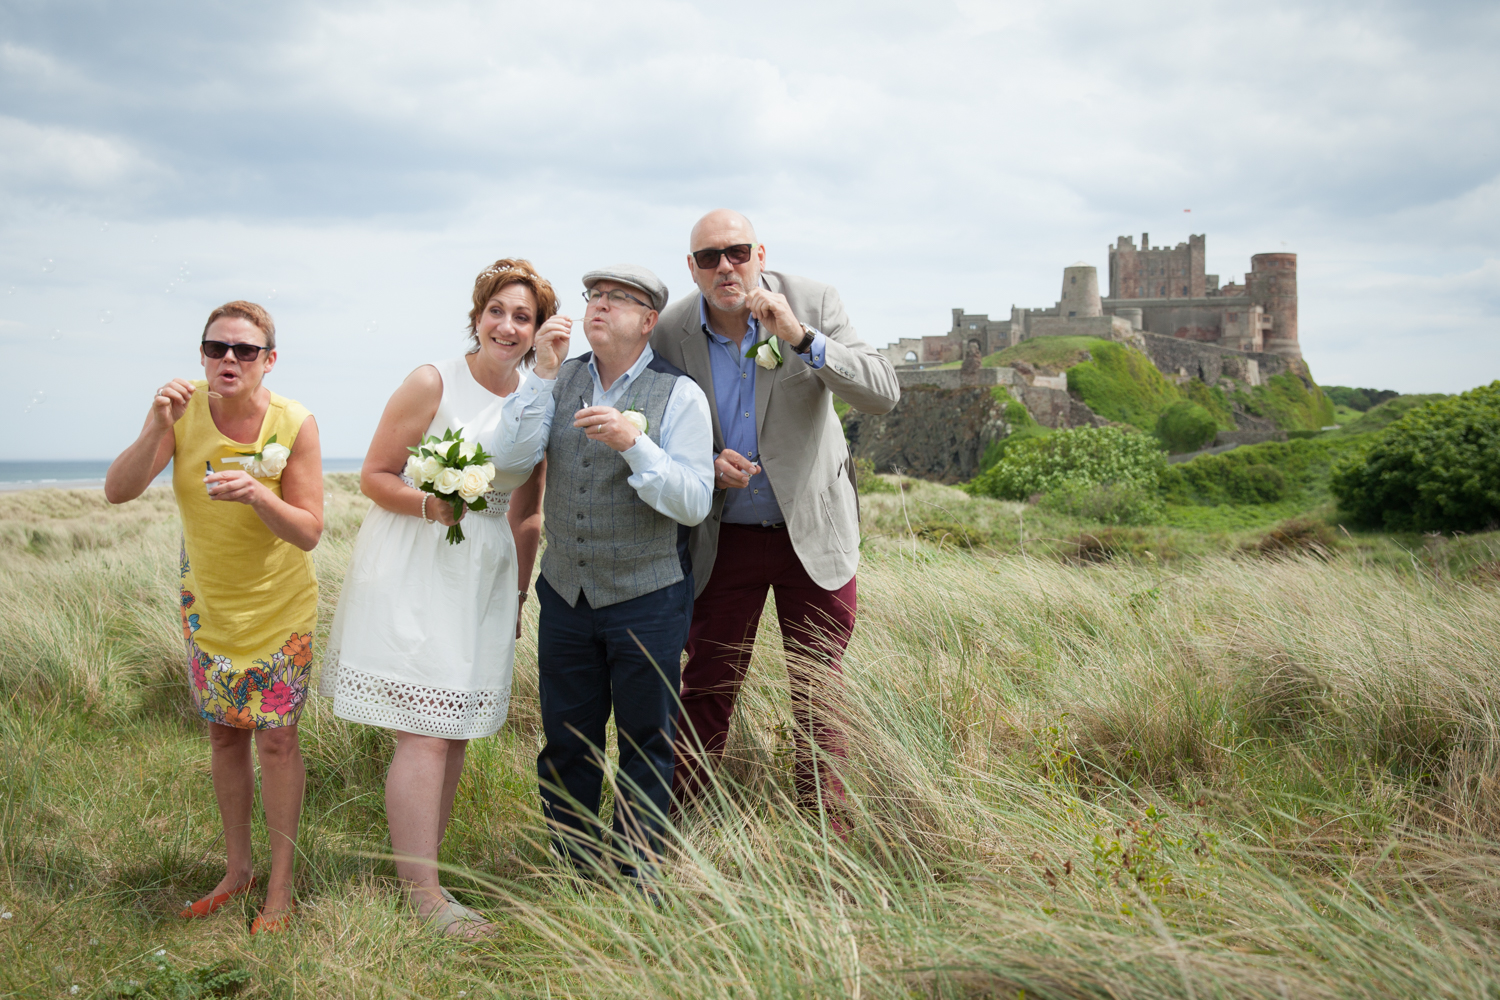 wedding-bamburgh-pictorial-elopement-friends-beach-0974.jpg